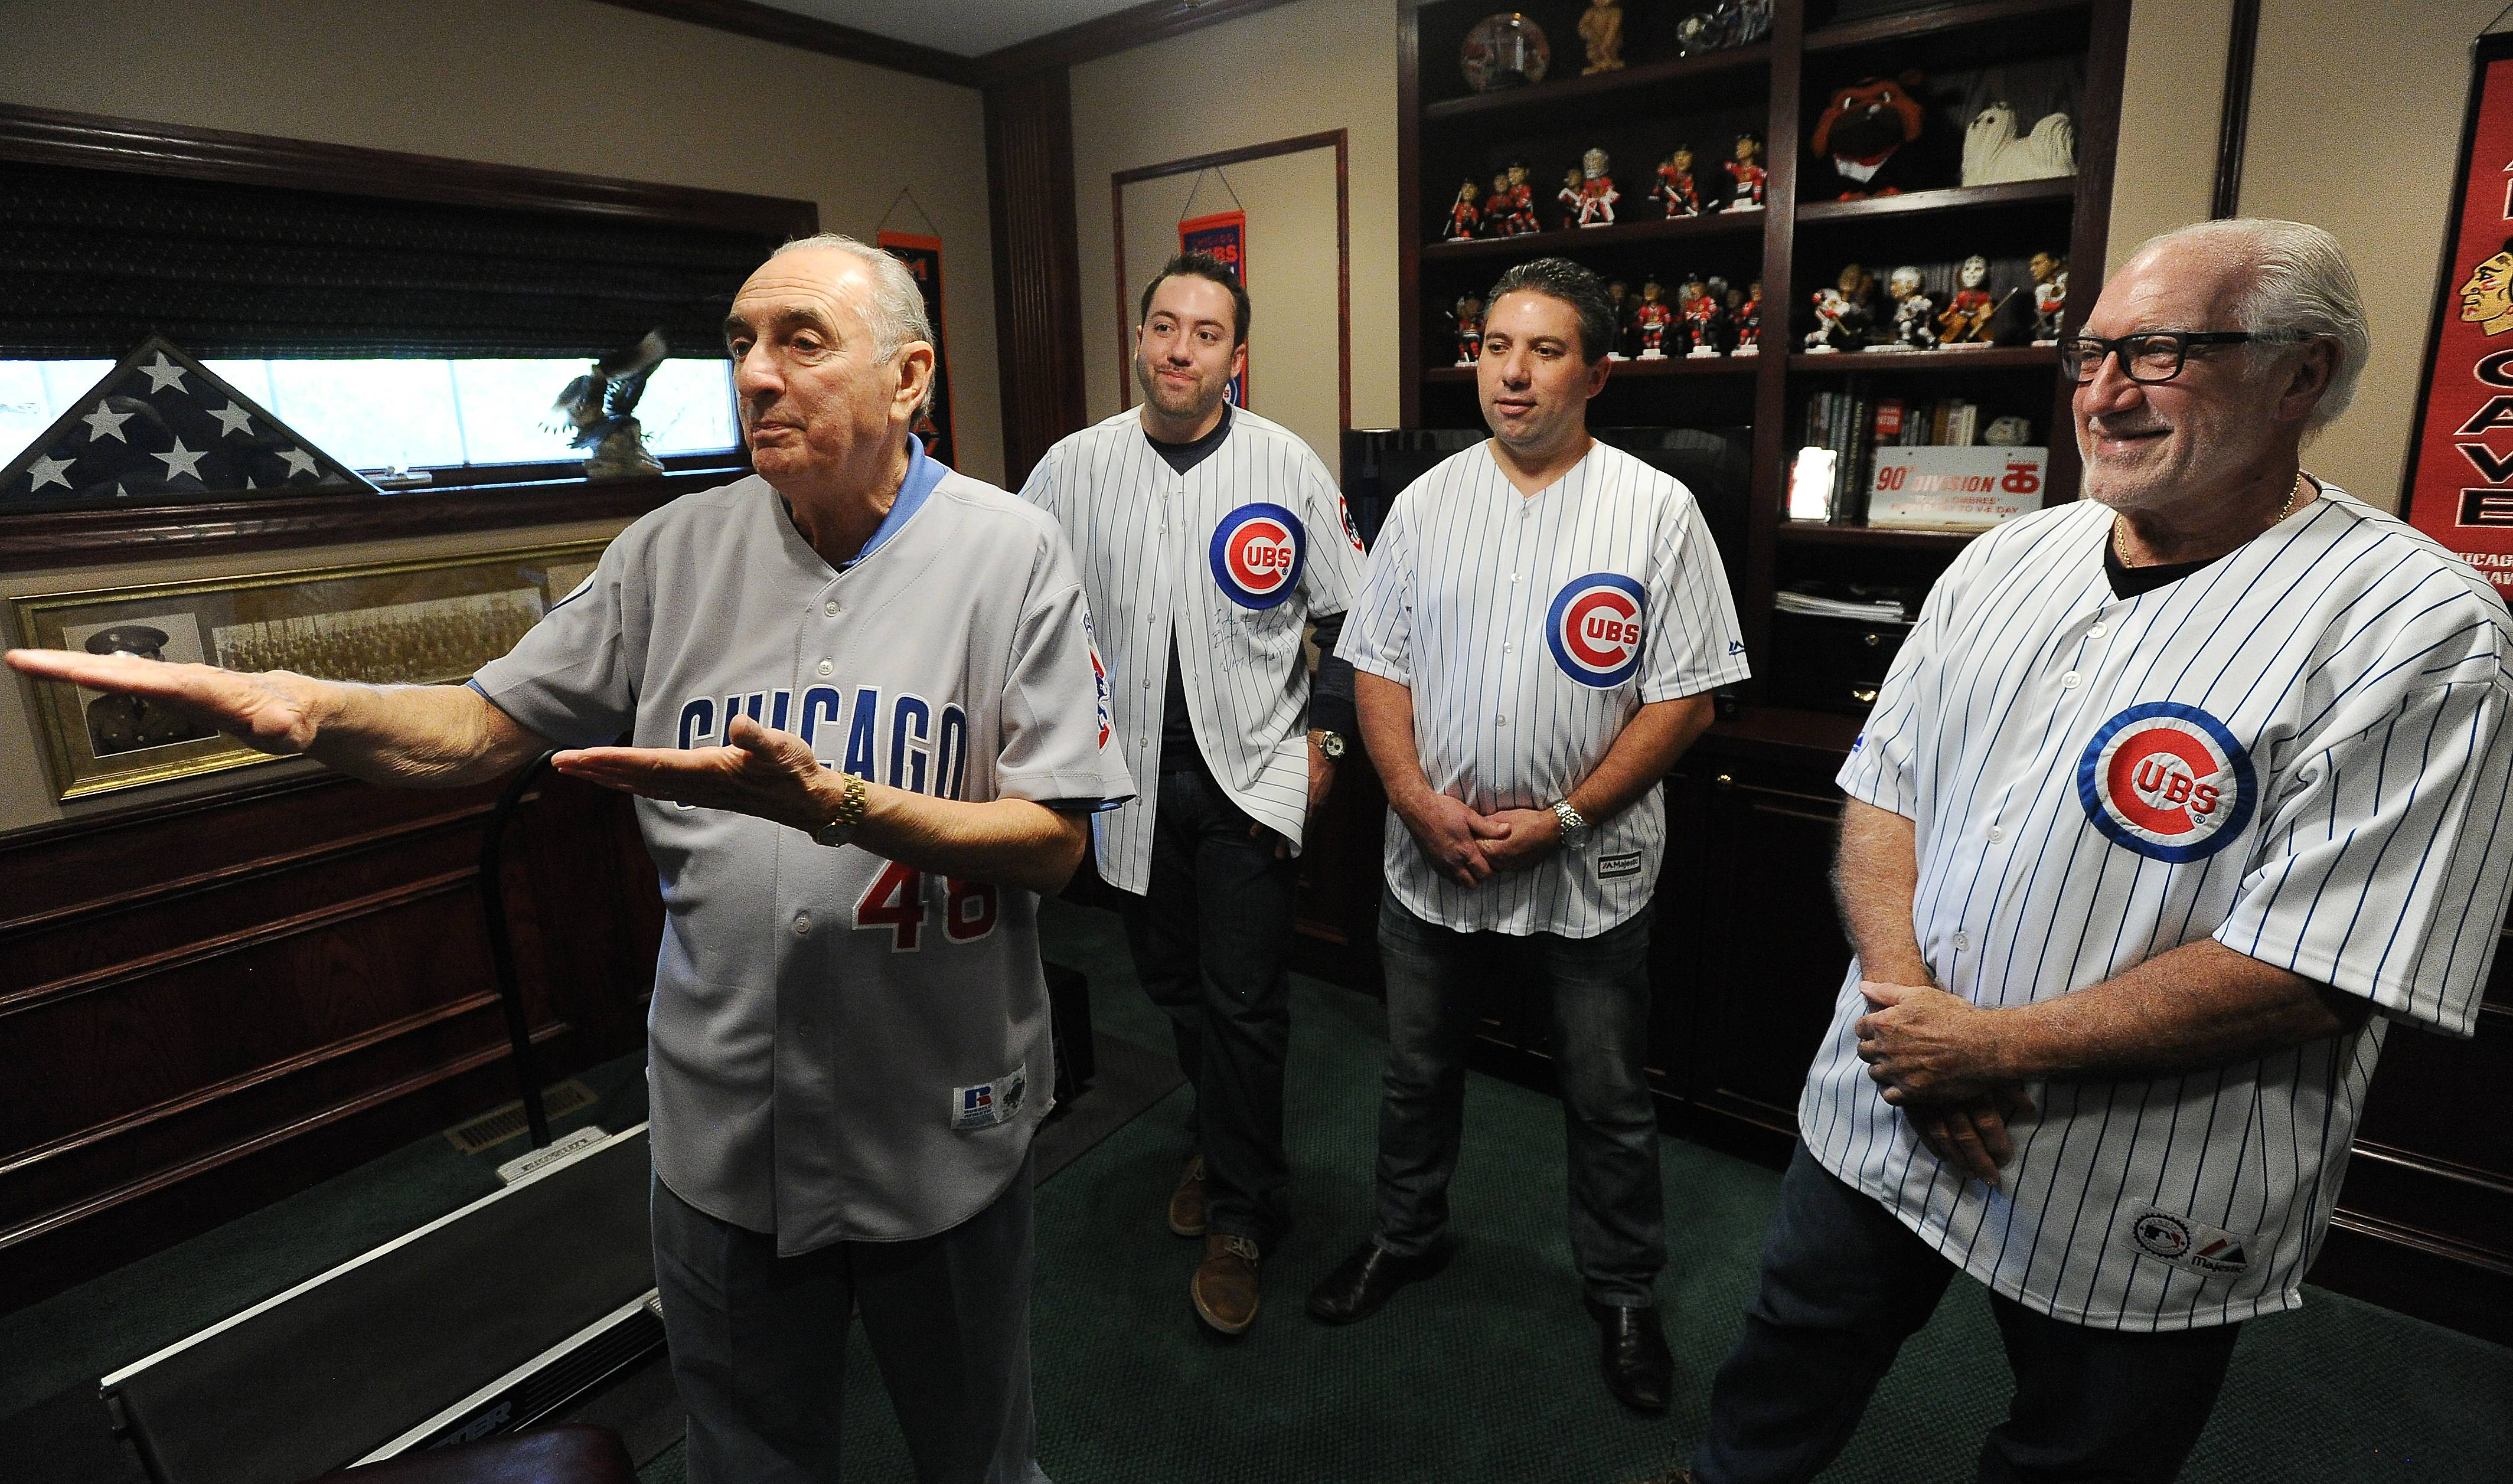 Telling stories about watching the 1945 World Series in Wrigley Field, 80-year-old Dan Pellettiere, left, of Palatine, will go to Saturday's game with his nephew, John Pellettiere Jr., right, and John's sons, John III and Joe.